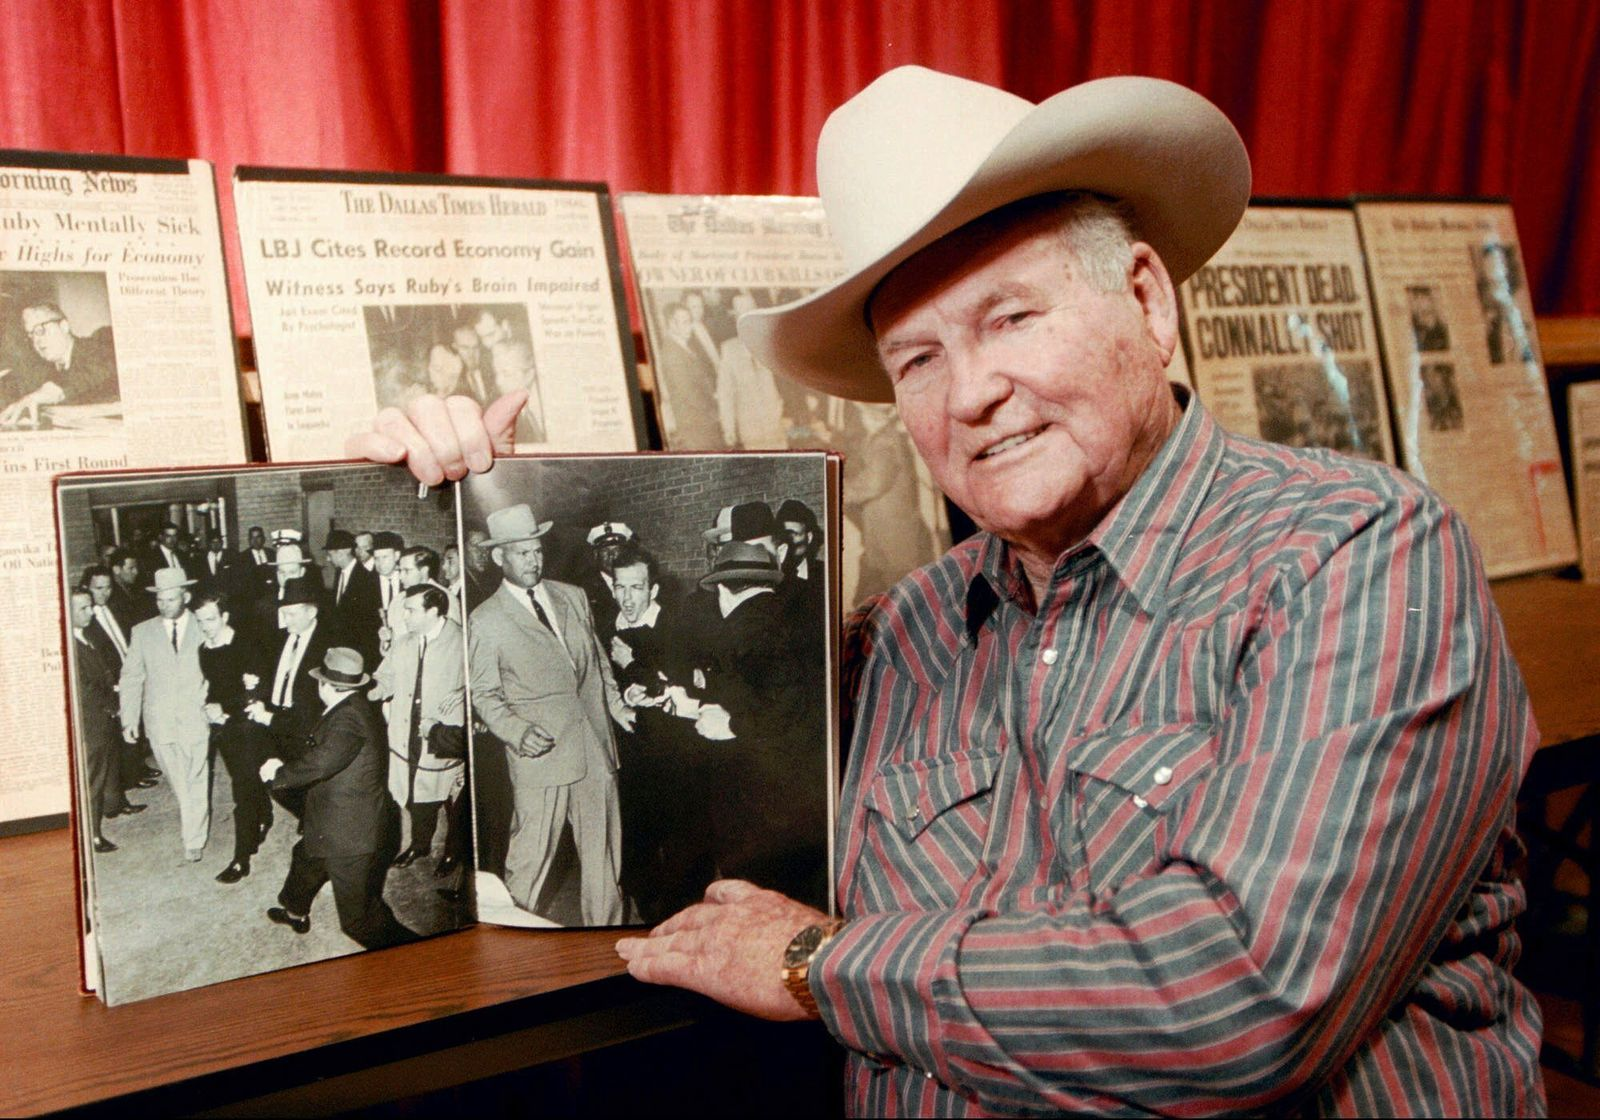 FILE - In this Dec. 11, 1998 file photo, shows Jim Leavelle in Stafford, Kansas holding the iconic 1963 photograph, as he escorted Lee Harvey Oswald moments before he is shot in Dallas.  Leavelle, the longtime Dallas lawman has died, Thursday, Aug. 29, 2019. He was 99.  (Sandra J. Milburn/The Hutchinson News via AP)